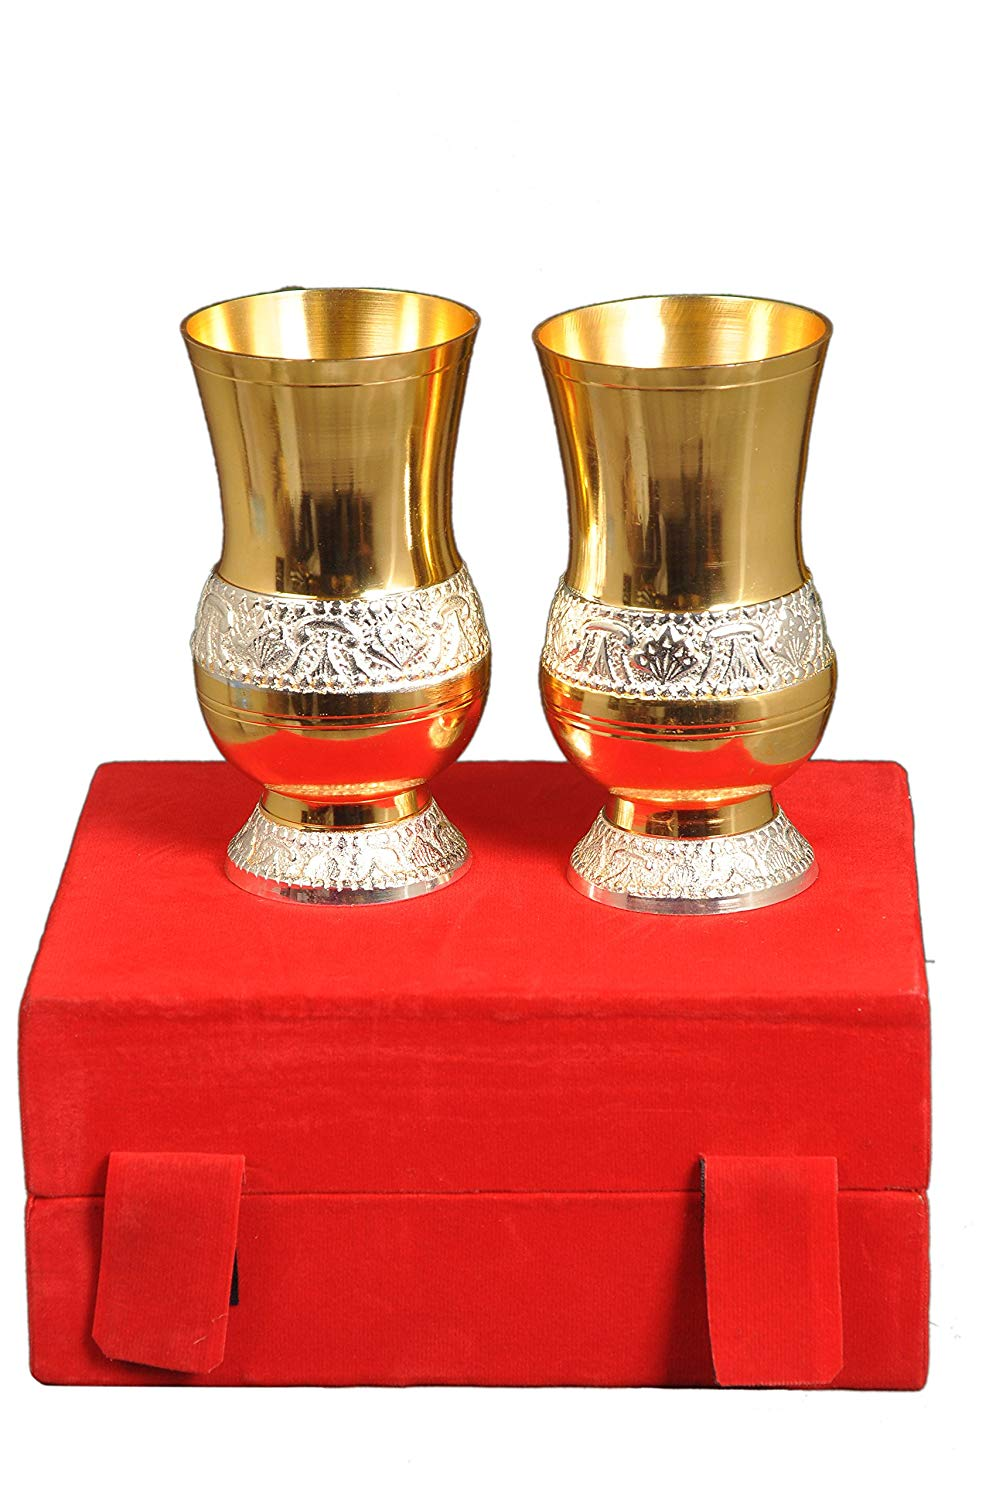 ure Brass Glasses Set of Two Red Box Gift Box. Water Glasses, Cocktail Glasses